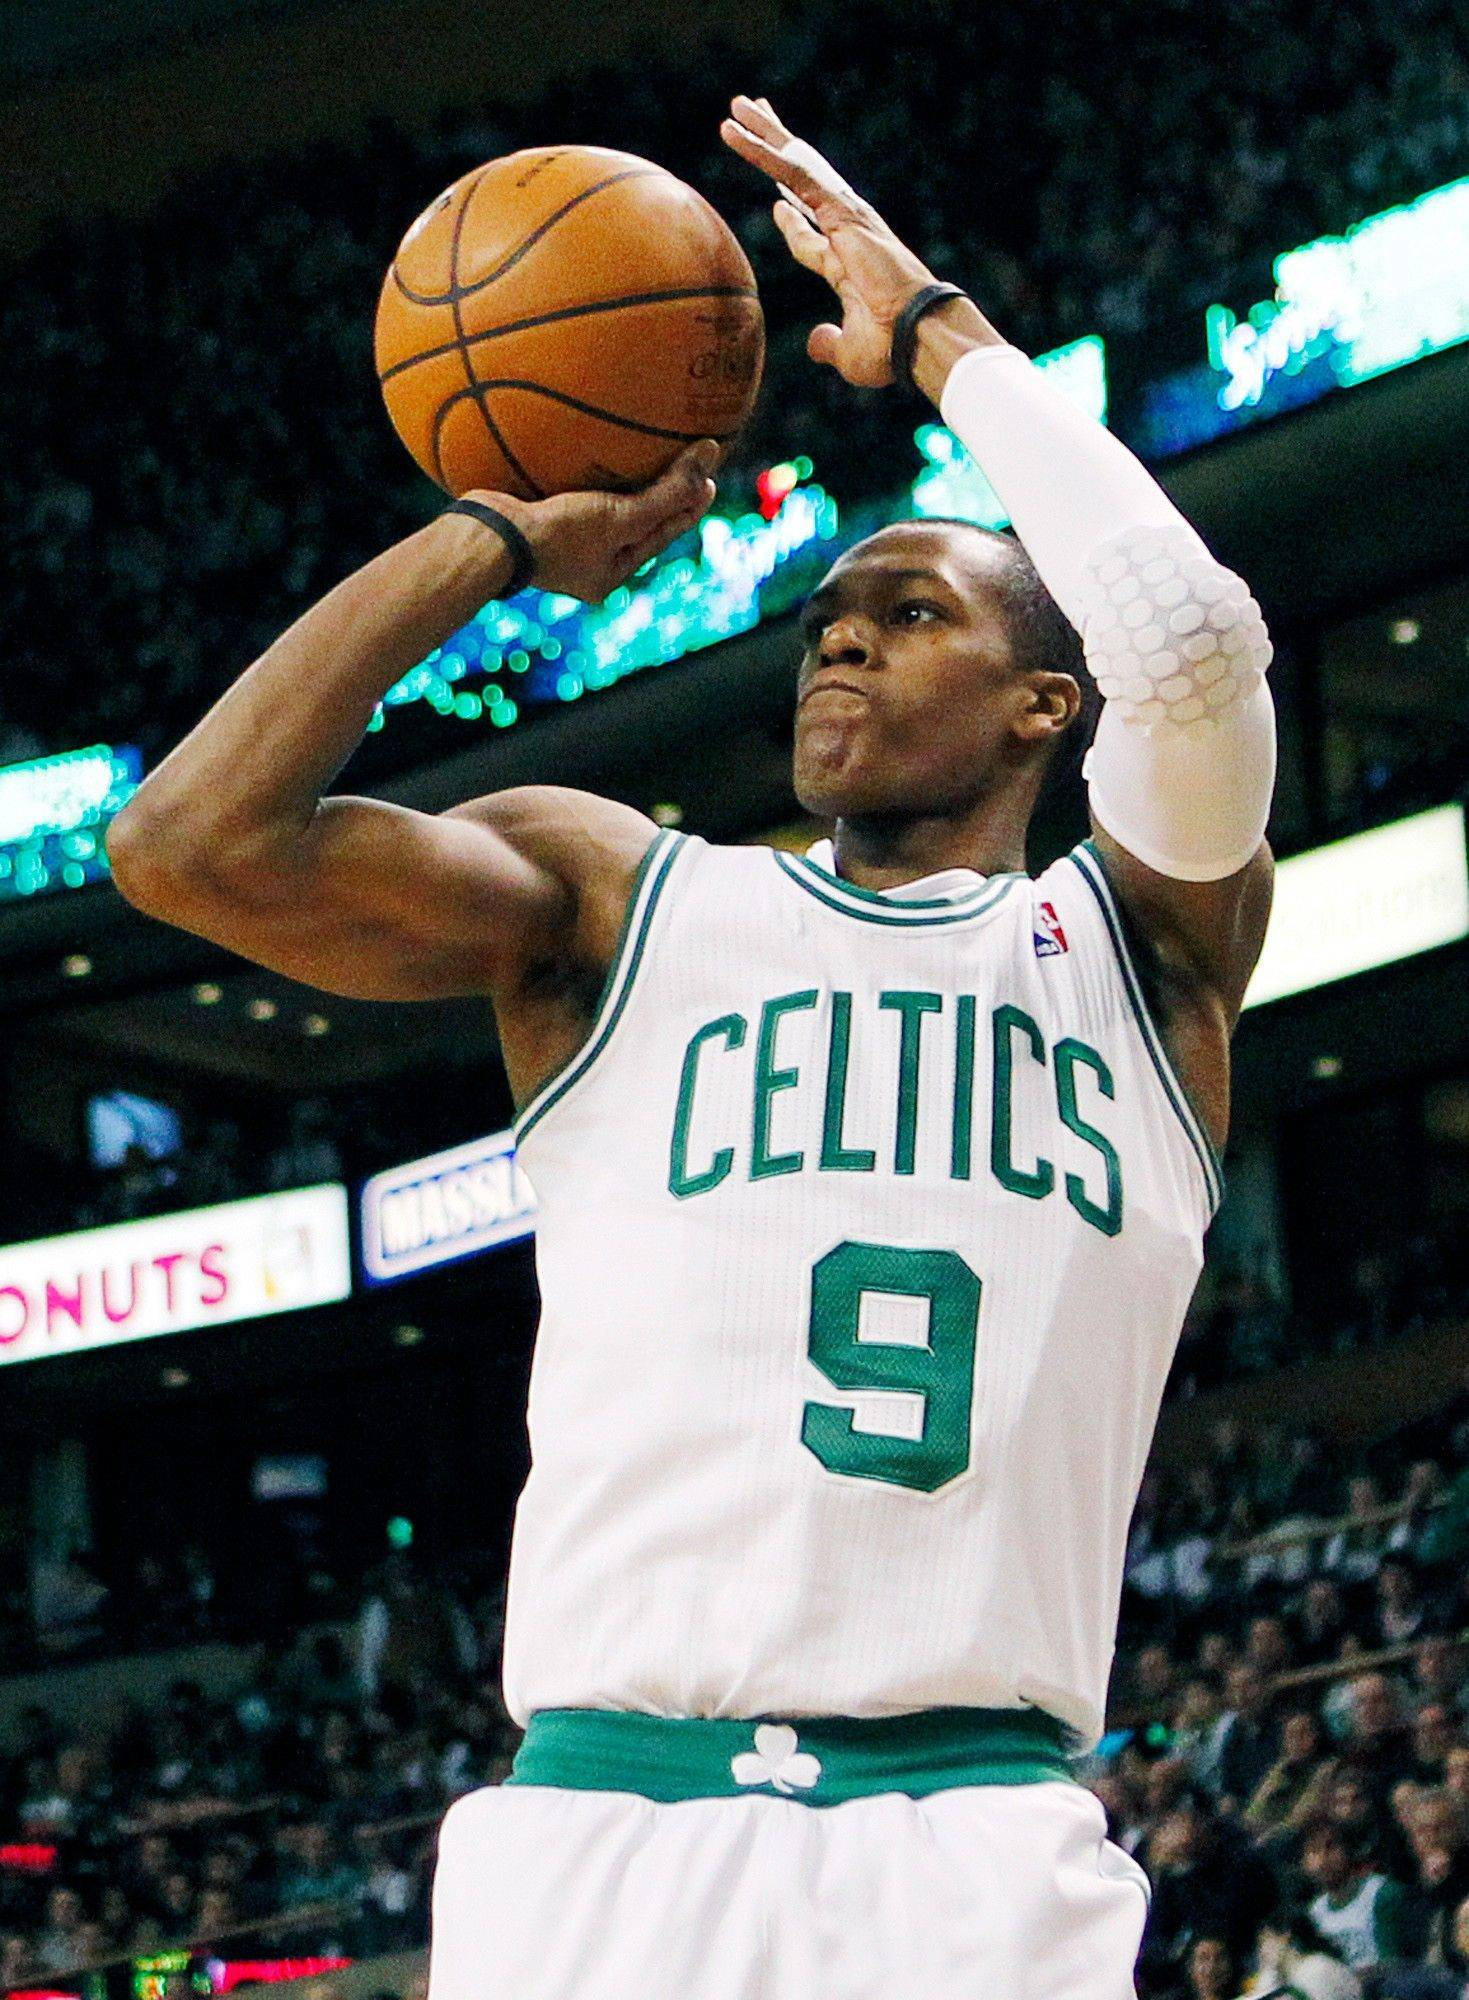 Celtics point guard Rajon Rondo finished with 33 points and 15 assists in Sunday's victory over the Bulls at Boston. The Celtics visit the United Center on Thursday night.